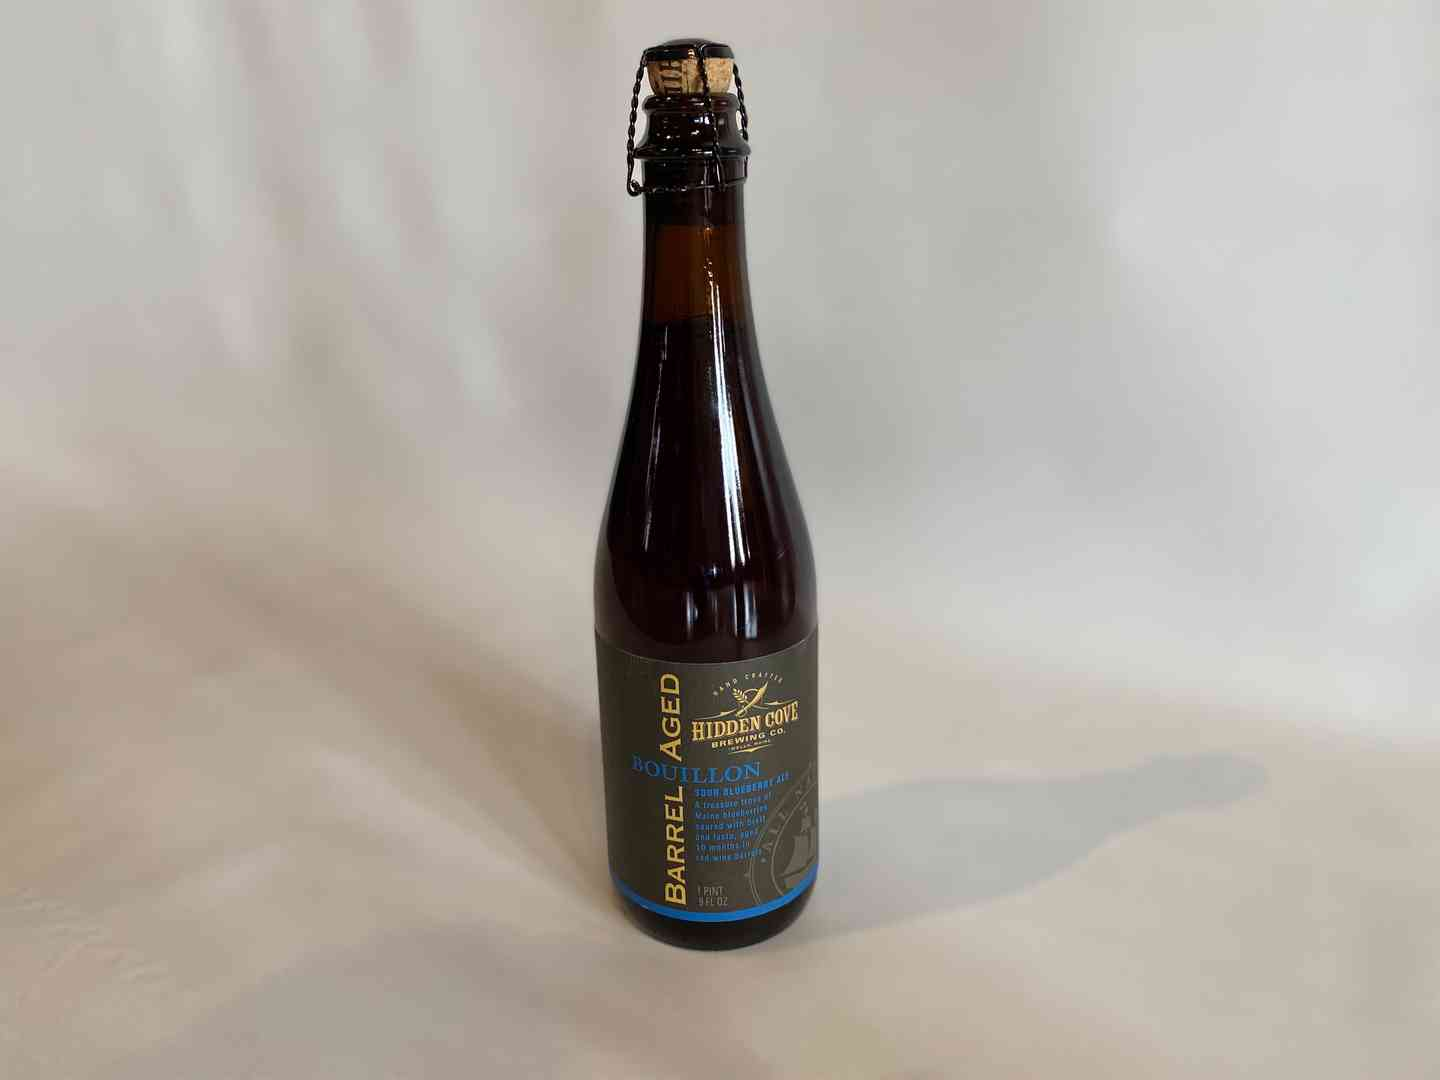 Bouillon Sour Blueberry Ale